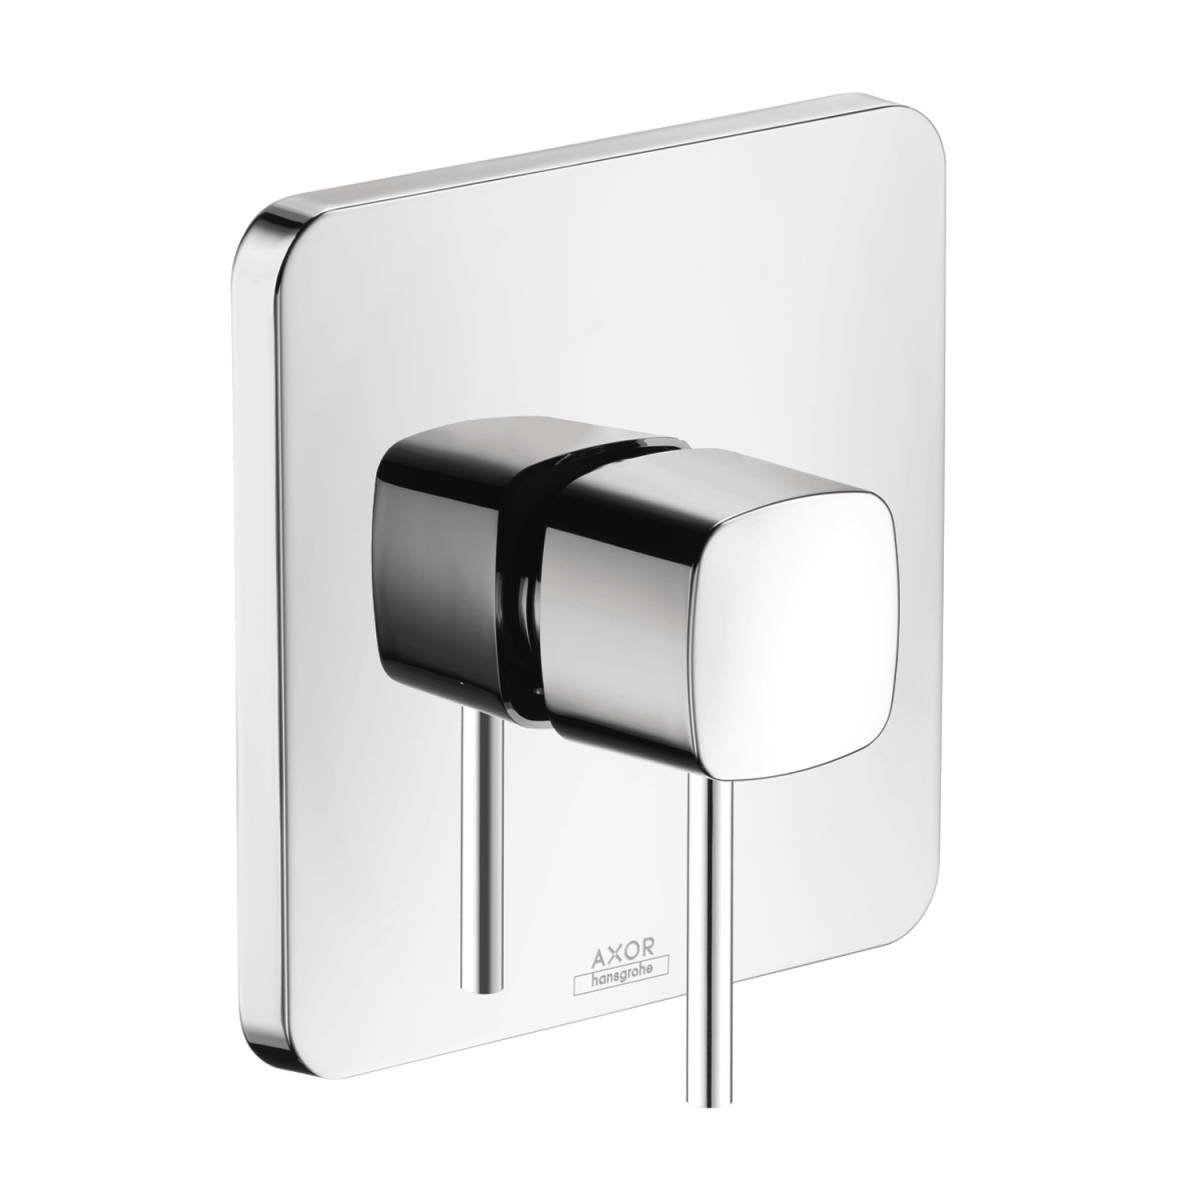 Single lever shower mixer for concealed installation, Chrome, 11408001